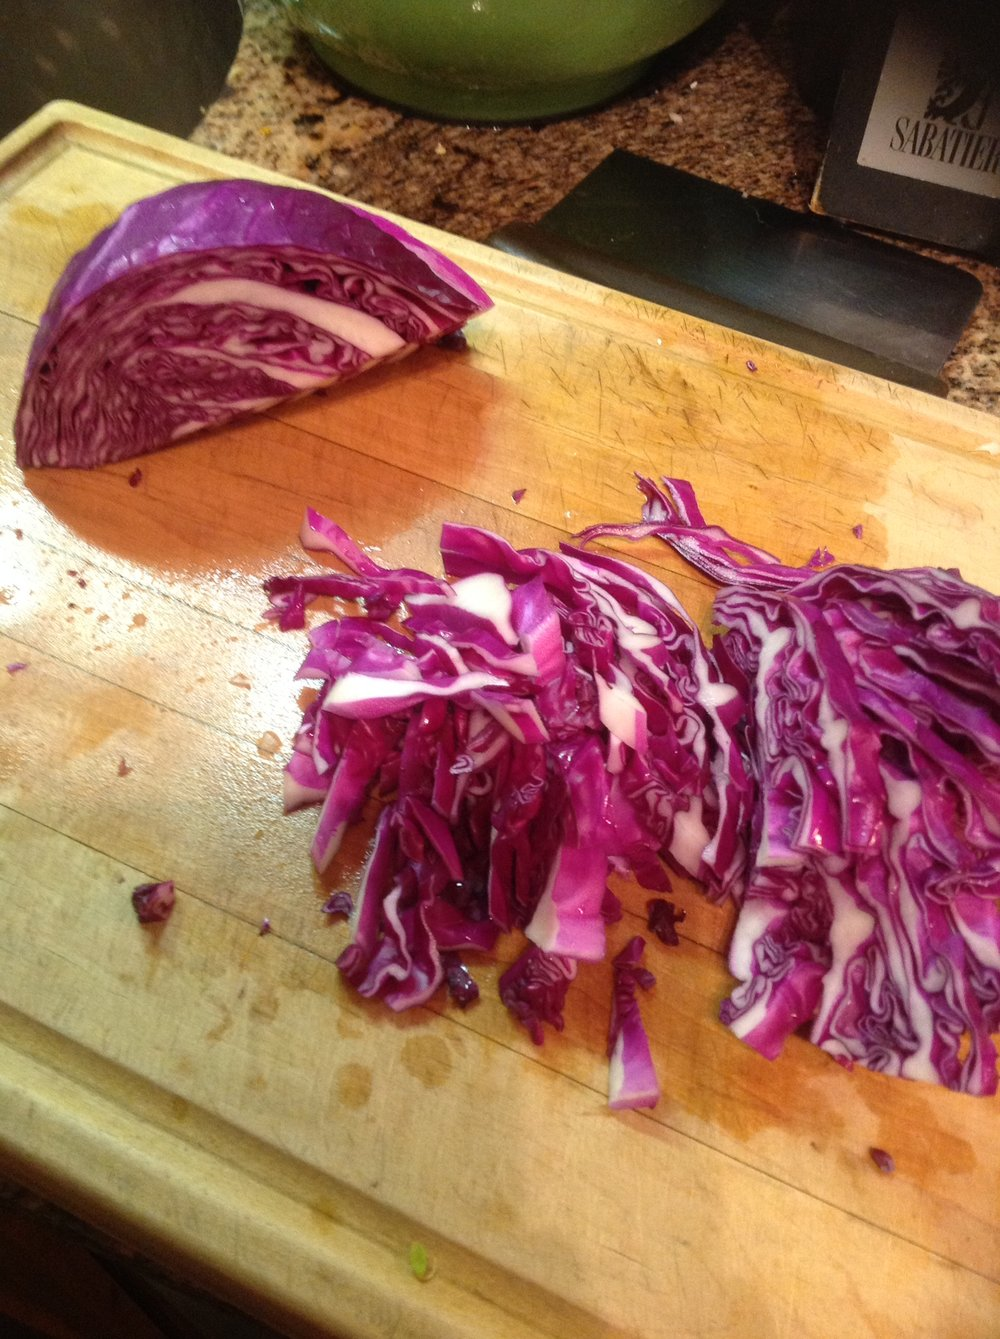 Chef's Budget Tip: Besides potatoes, cabbage is the cheapest vegetable. The USDA has found it to have the lowest cost per edible cup .